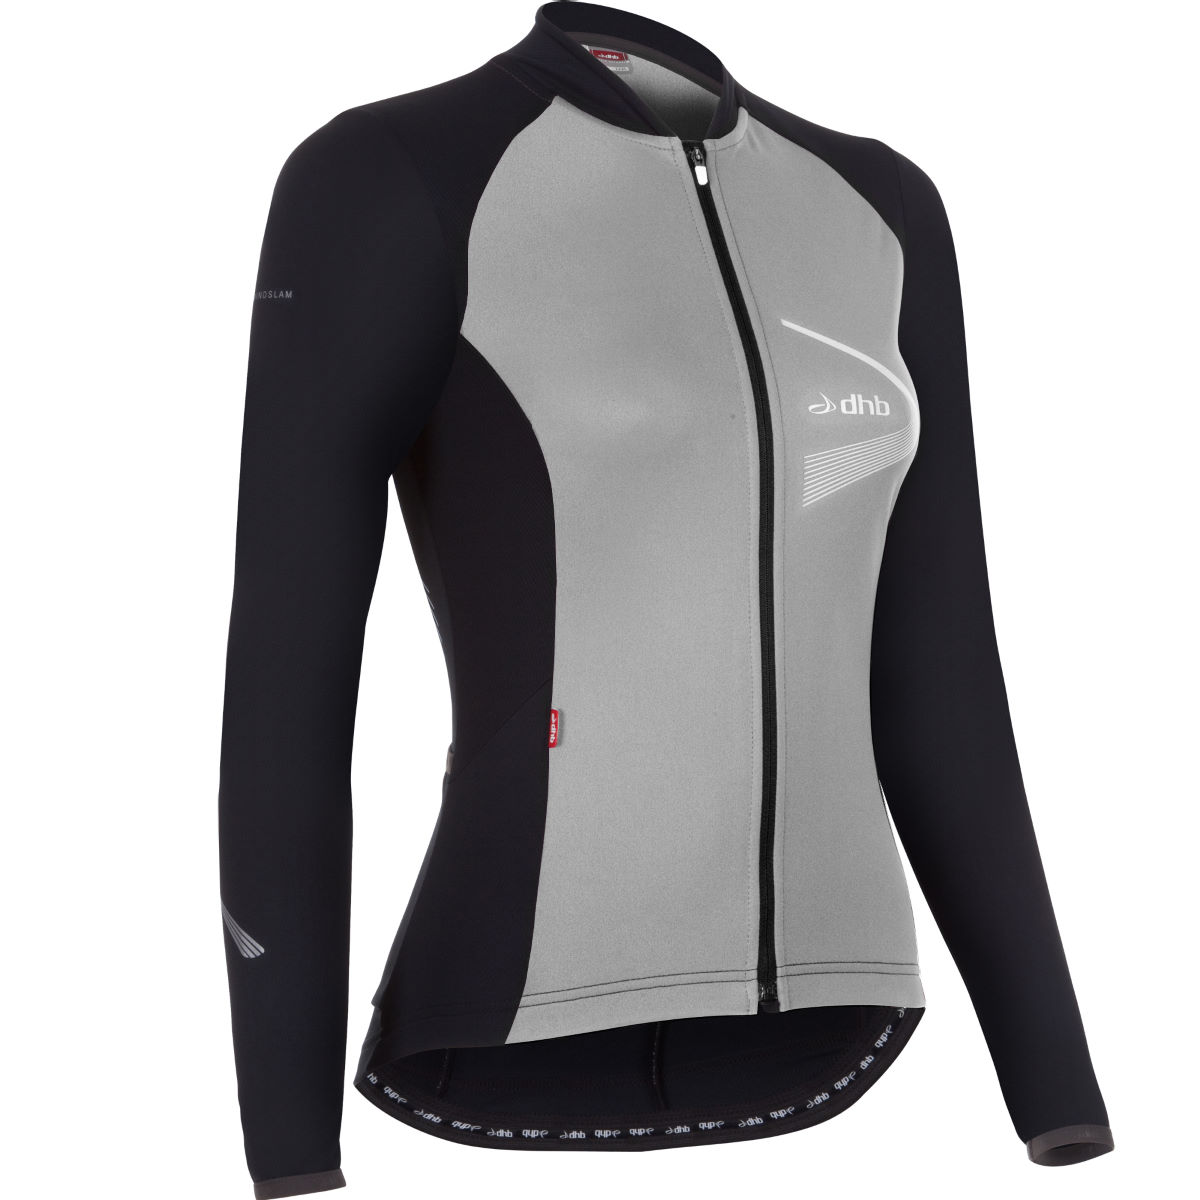 dhb Women's Windslam Long Sleeve Jersey